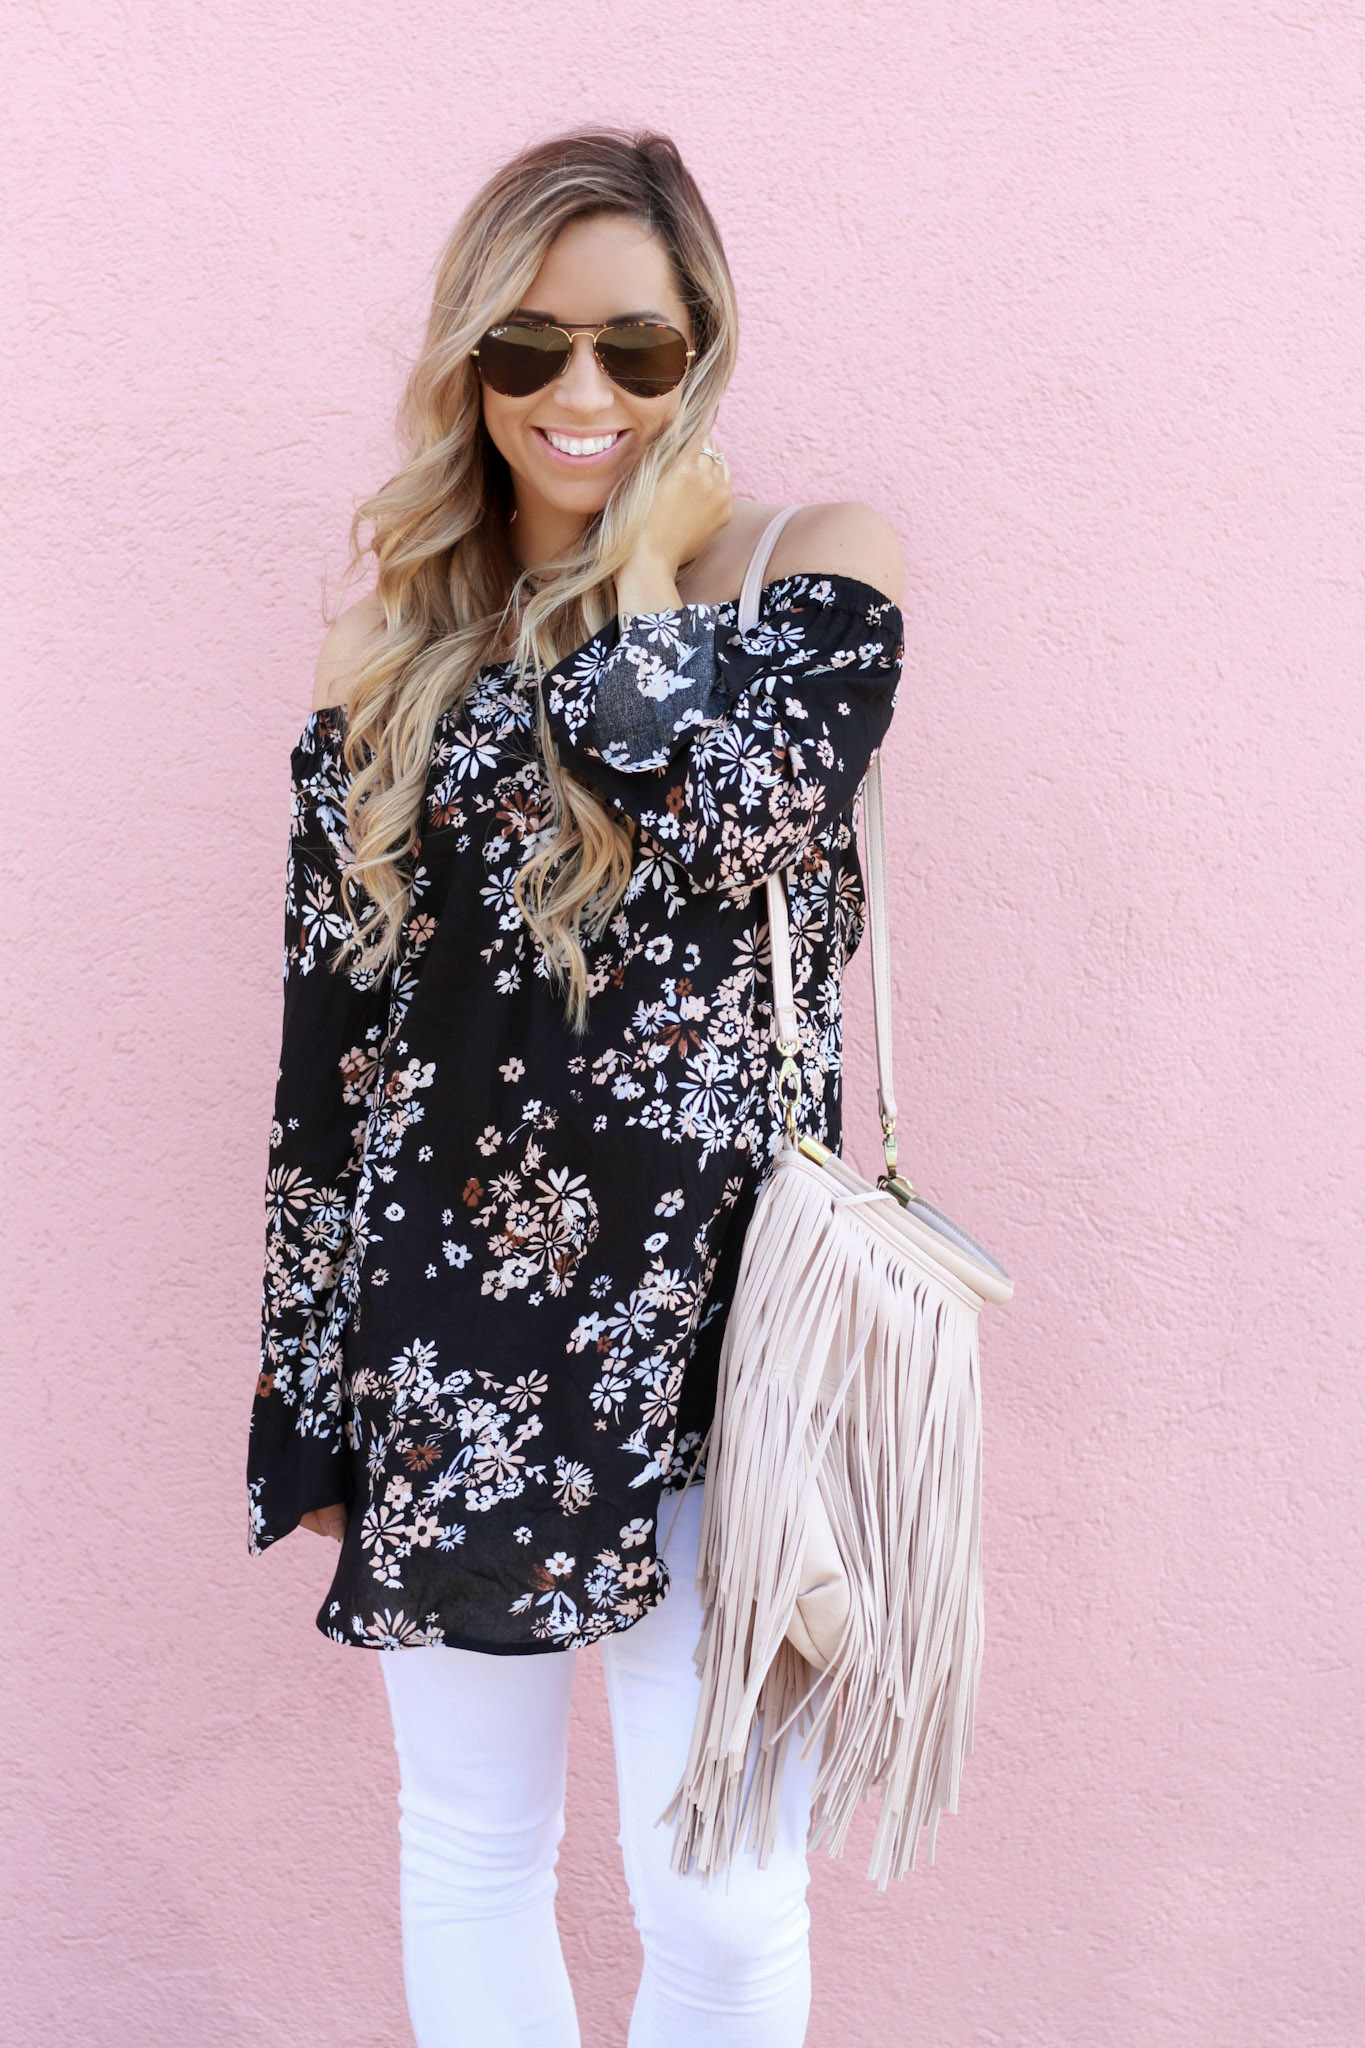 accordingtoblaire, according to blaire, floral ots top, nordstrom, fashion blogger, rva blogger, fringe bag, white skinny jeans, maternity jeans, trending for spring, spring trends 2017